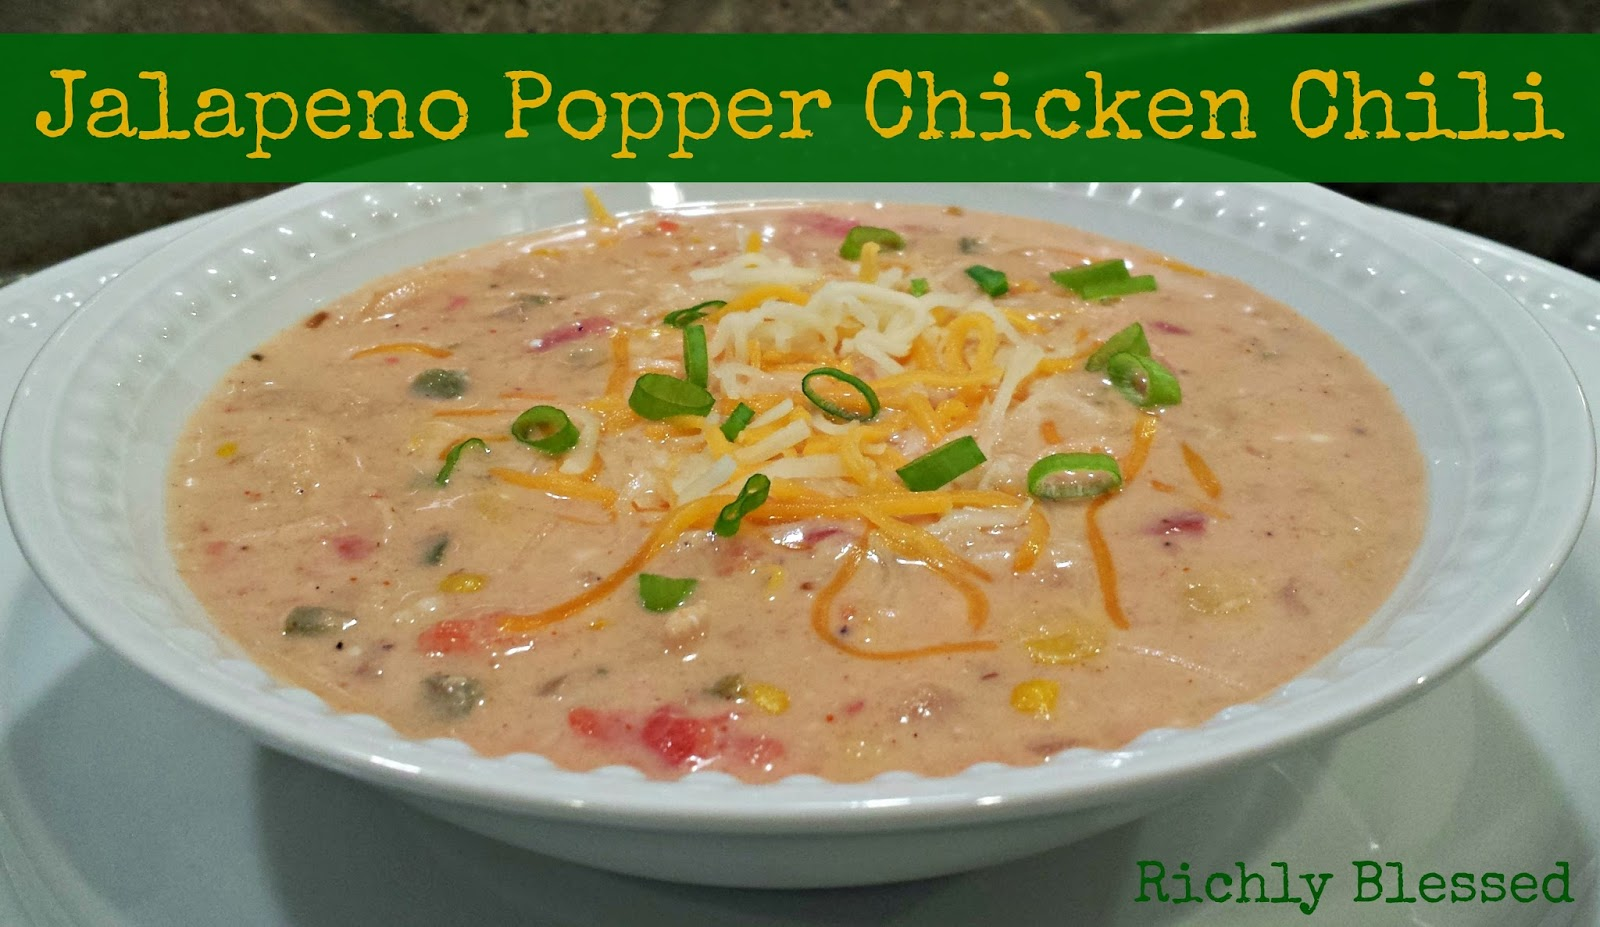 Richly Blessed: Jalapeno Popper Chicken Chili